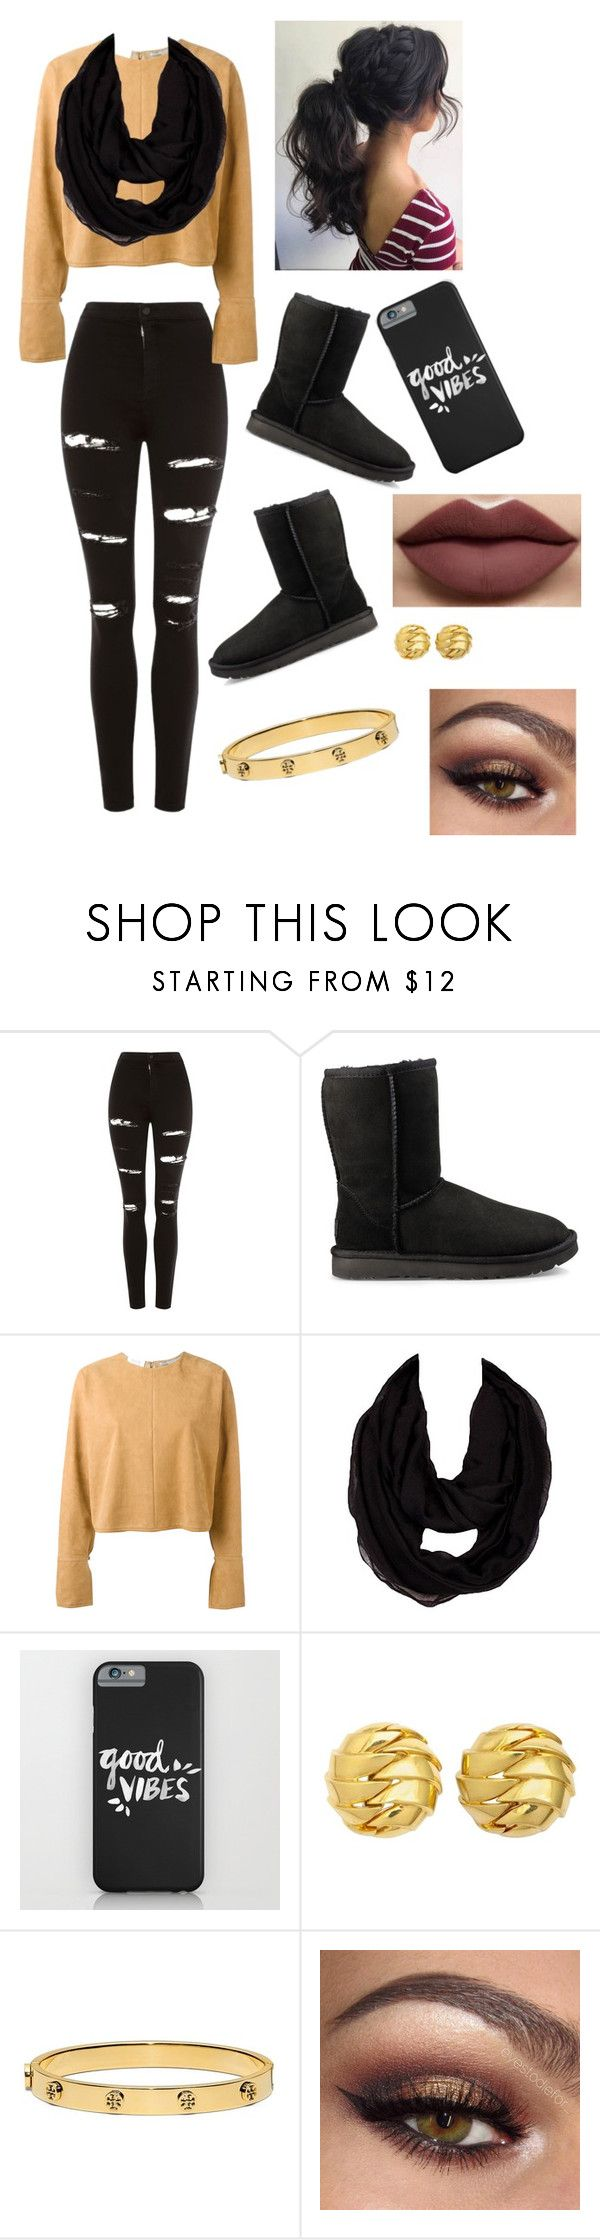 """Fall day"" by gussied-up on Polyvore featuring Topshop, UGG, STELLA McCARTNEY, Tiffany & Co. and Tory Burch"